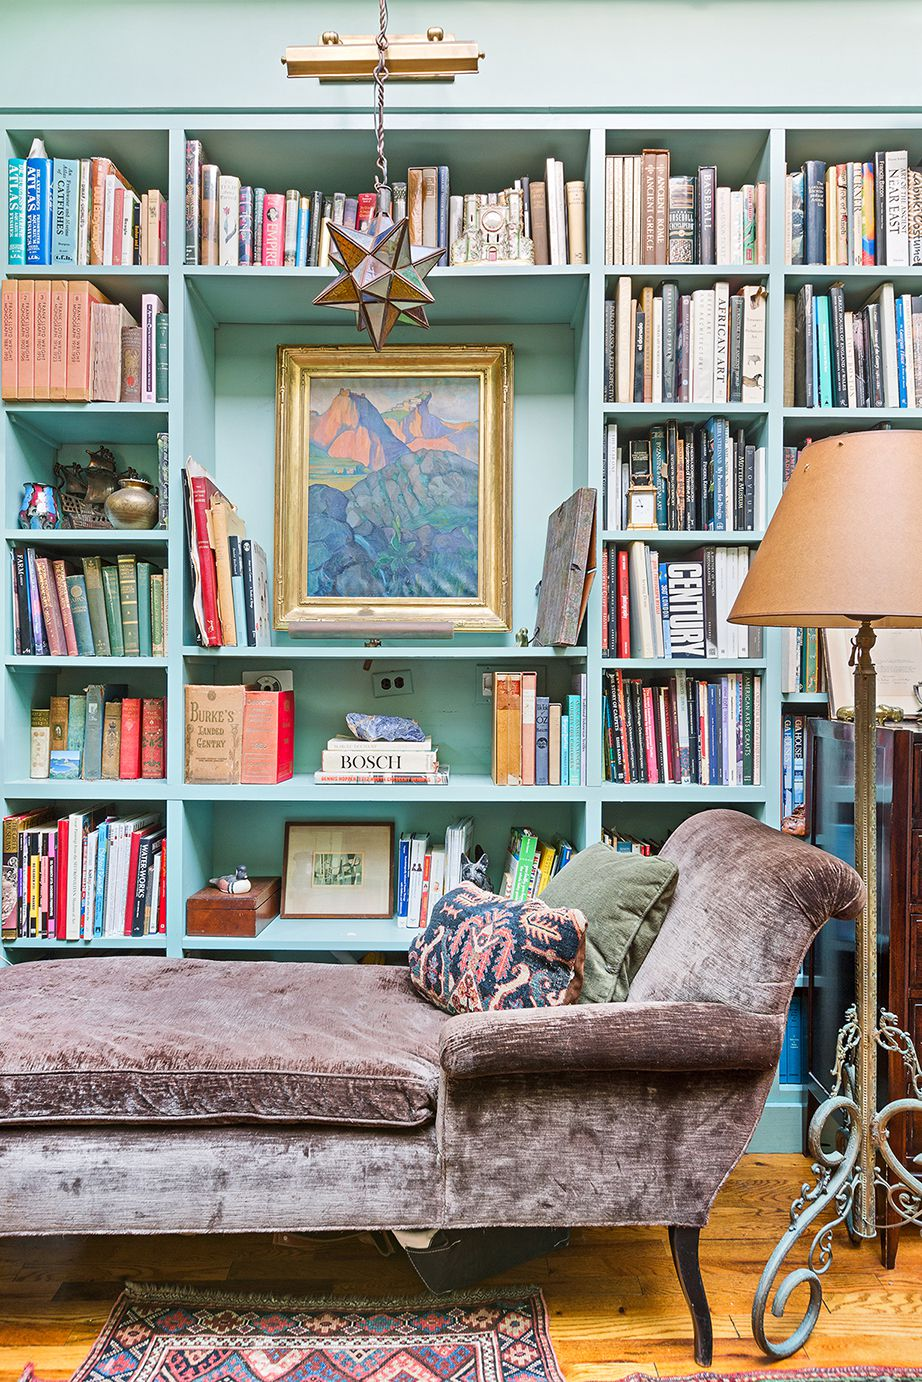 A living area with a brown couch, hardwood floors, a blue bookshelf, and a standing lamp.